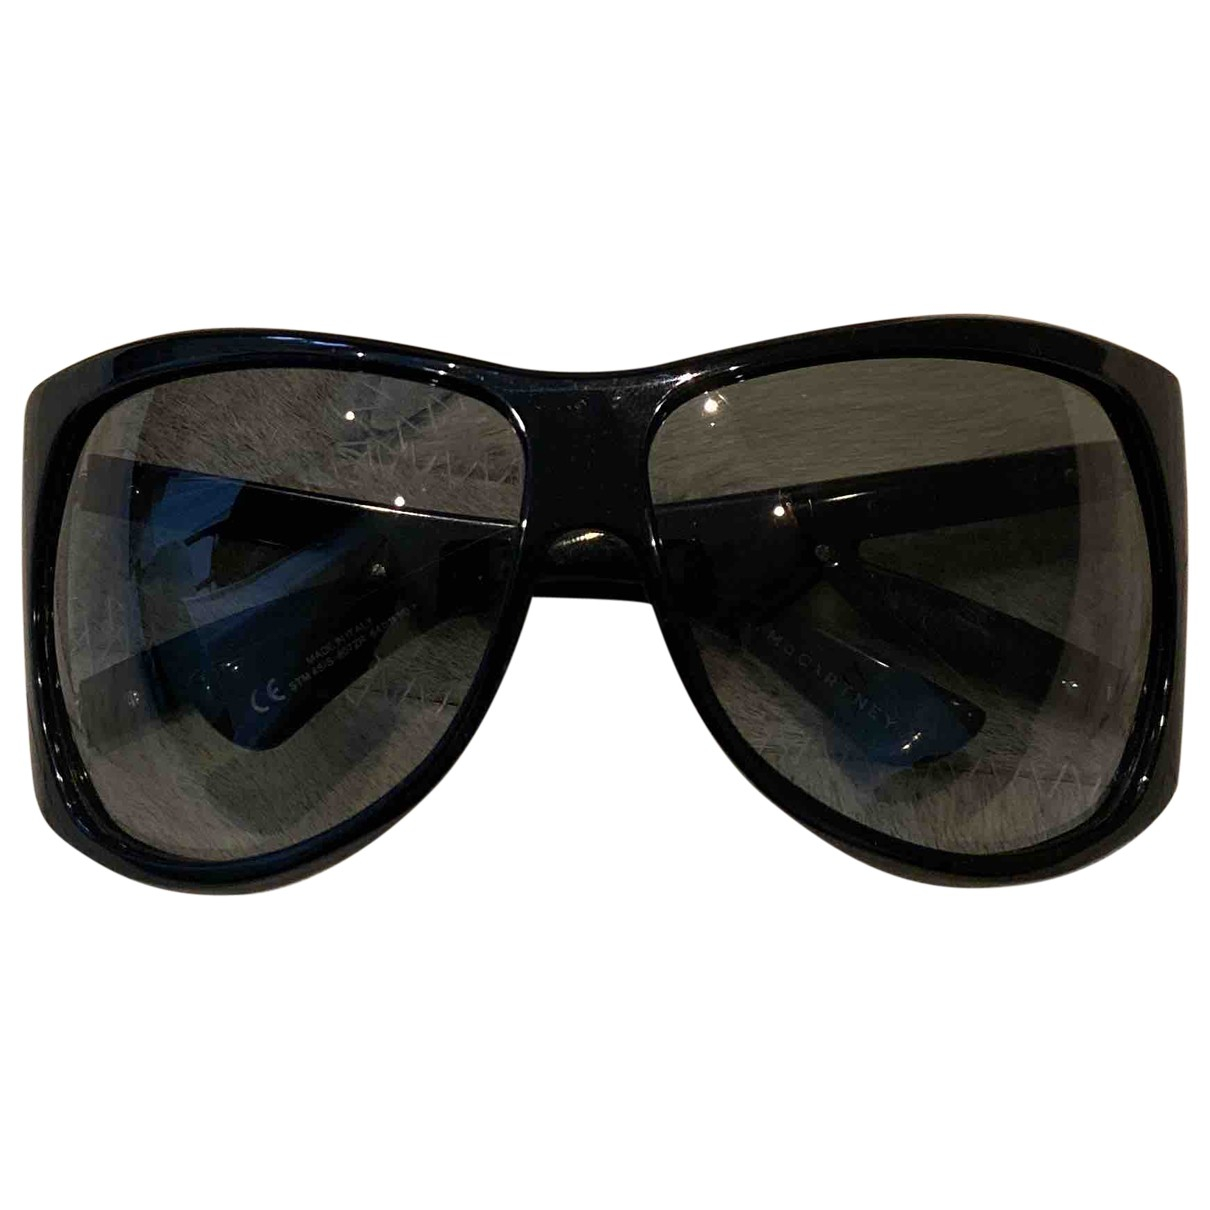 Stella Mccartney \N Black Sunglasses for Women \N